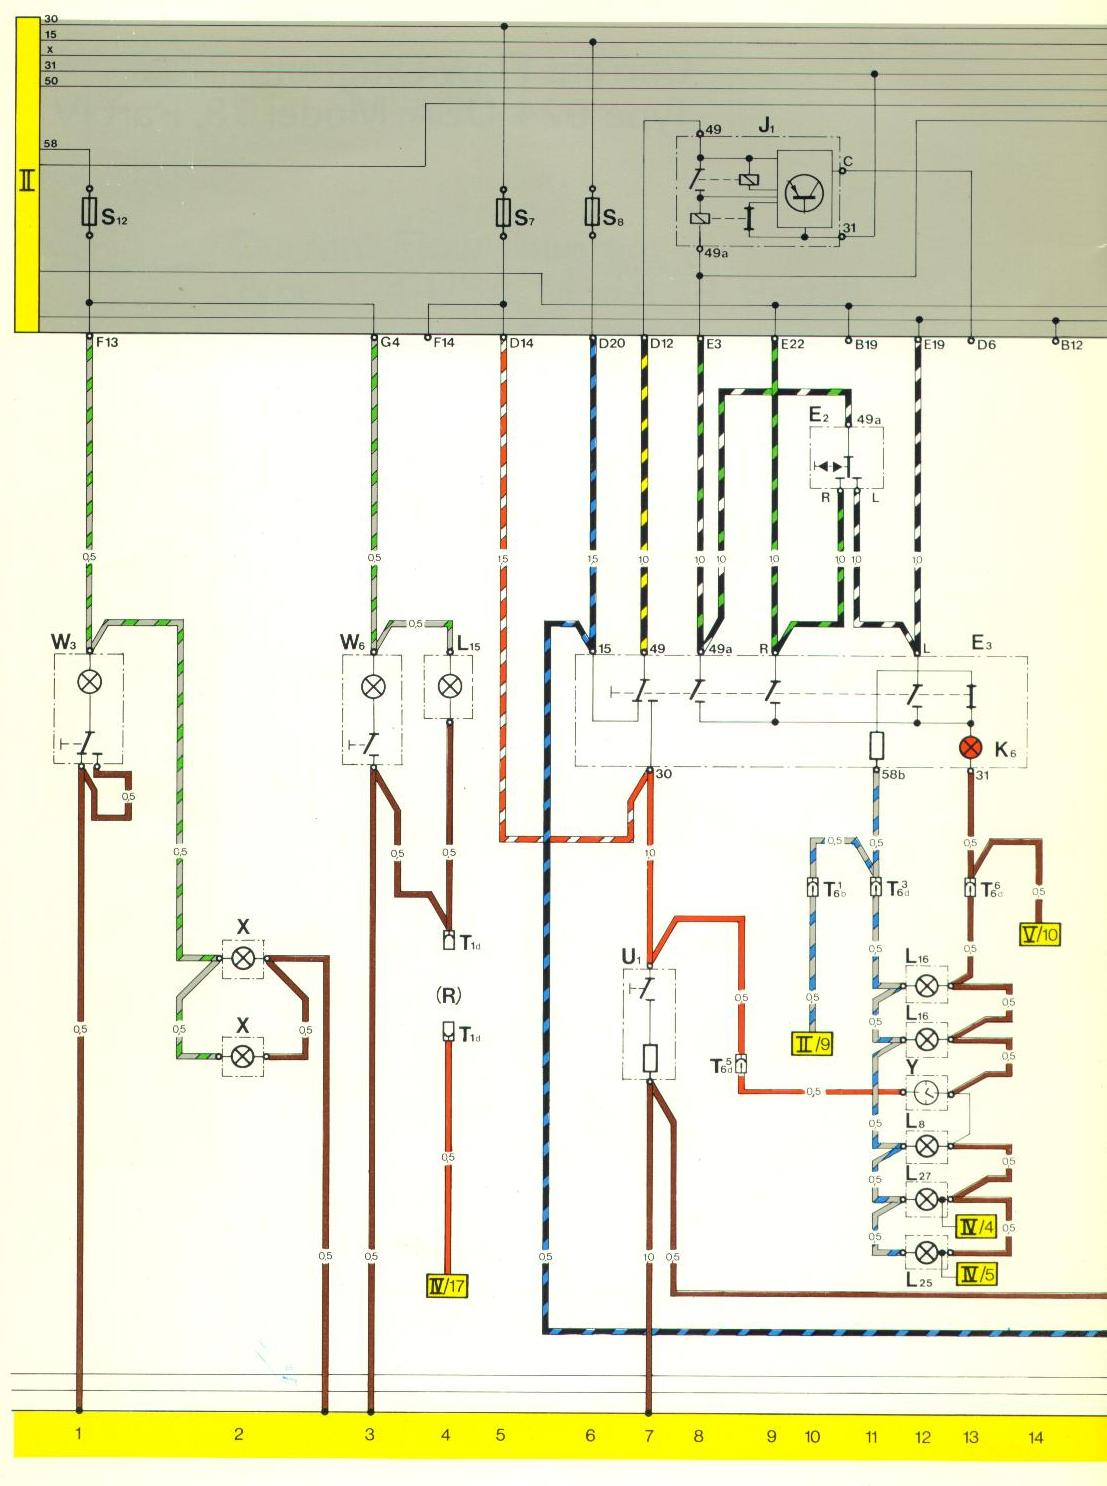 porsche 944 power window wiring diagram wiring librarypart 3 page 1, pelican parts porsche 924 944 electrical diagrams